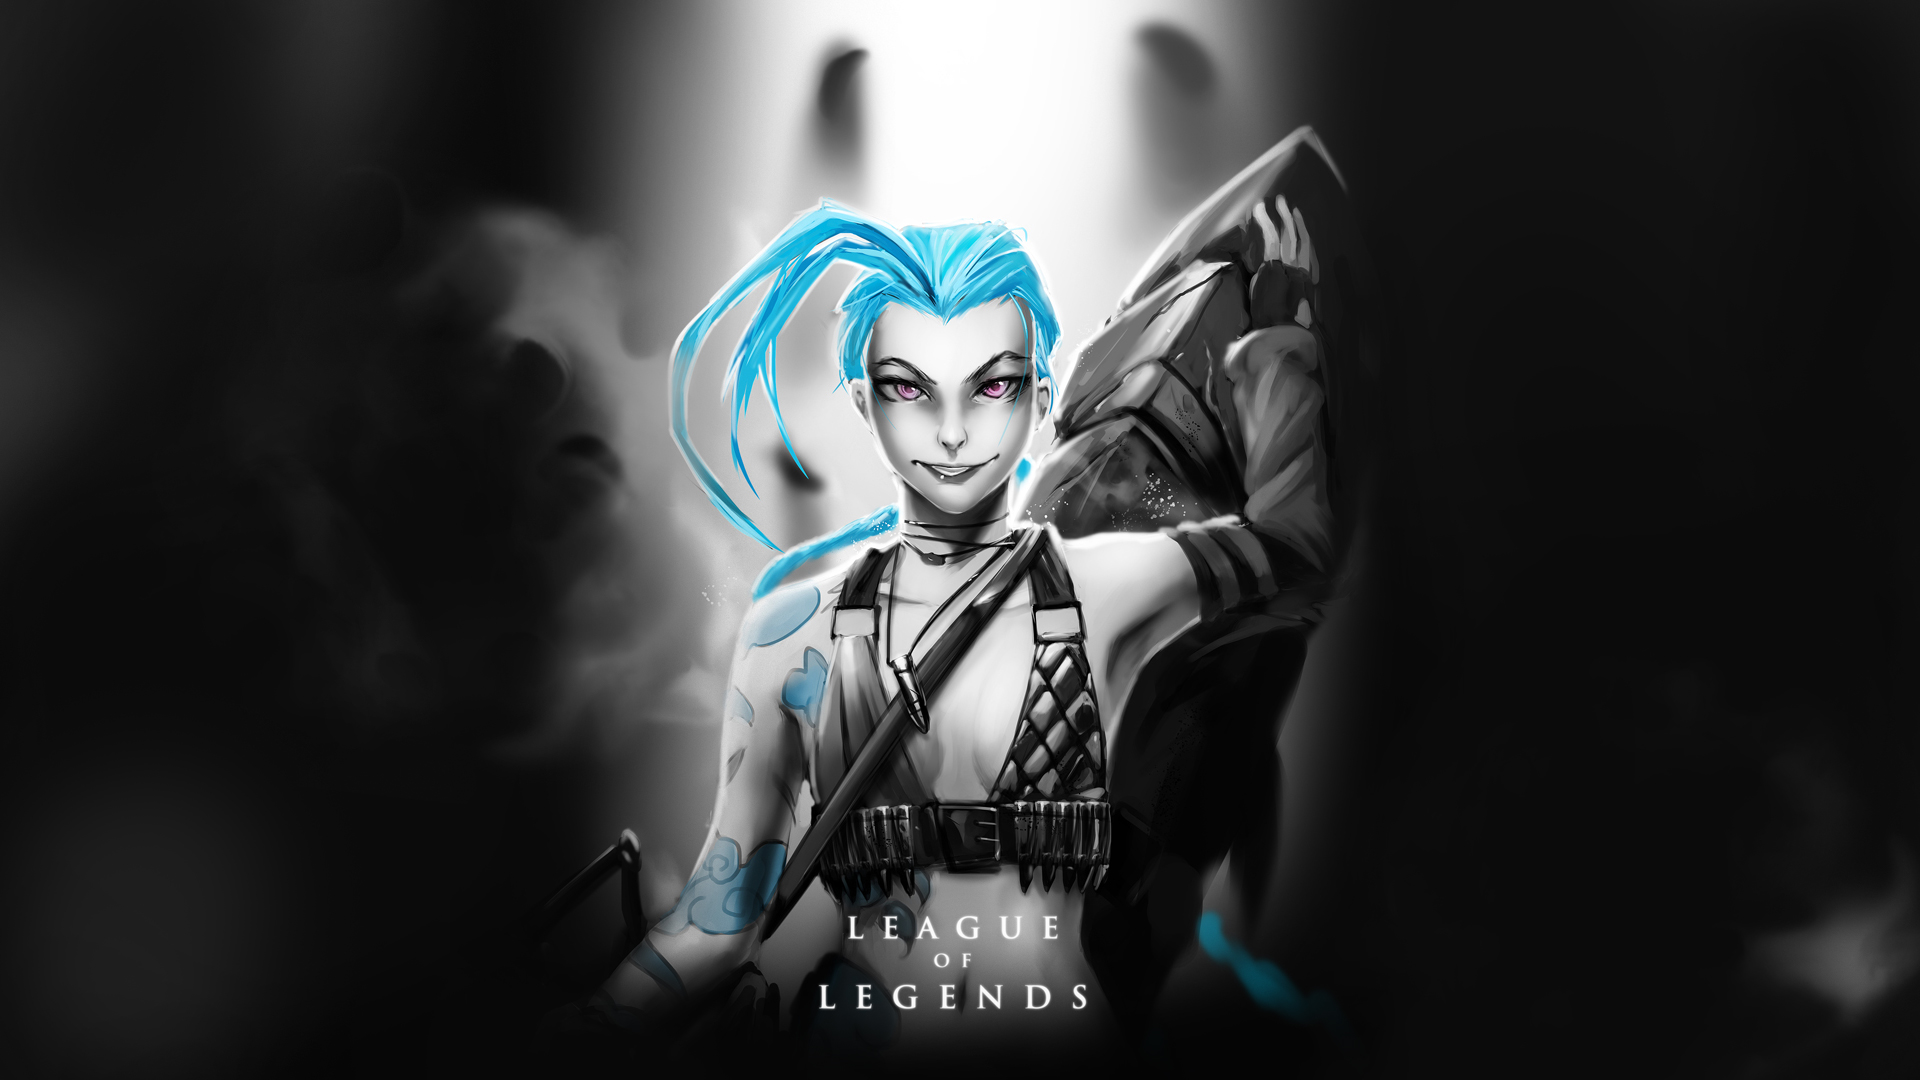 League of Legends wallpaper 101